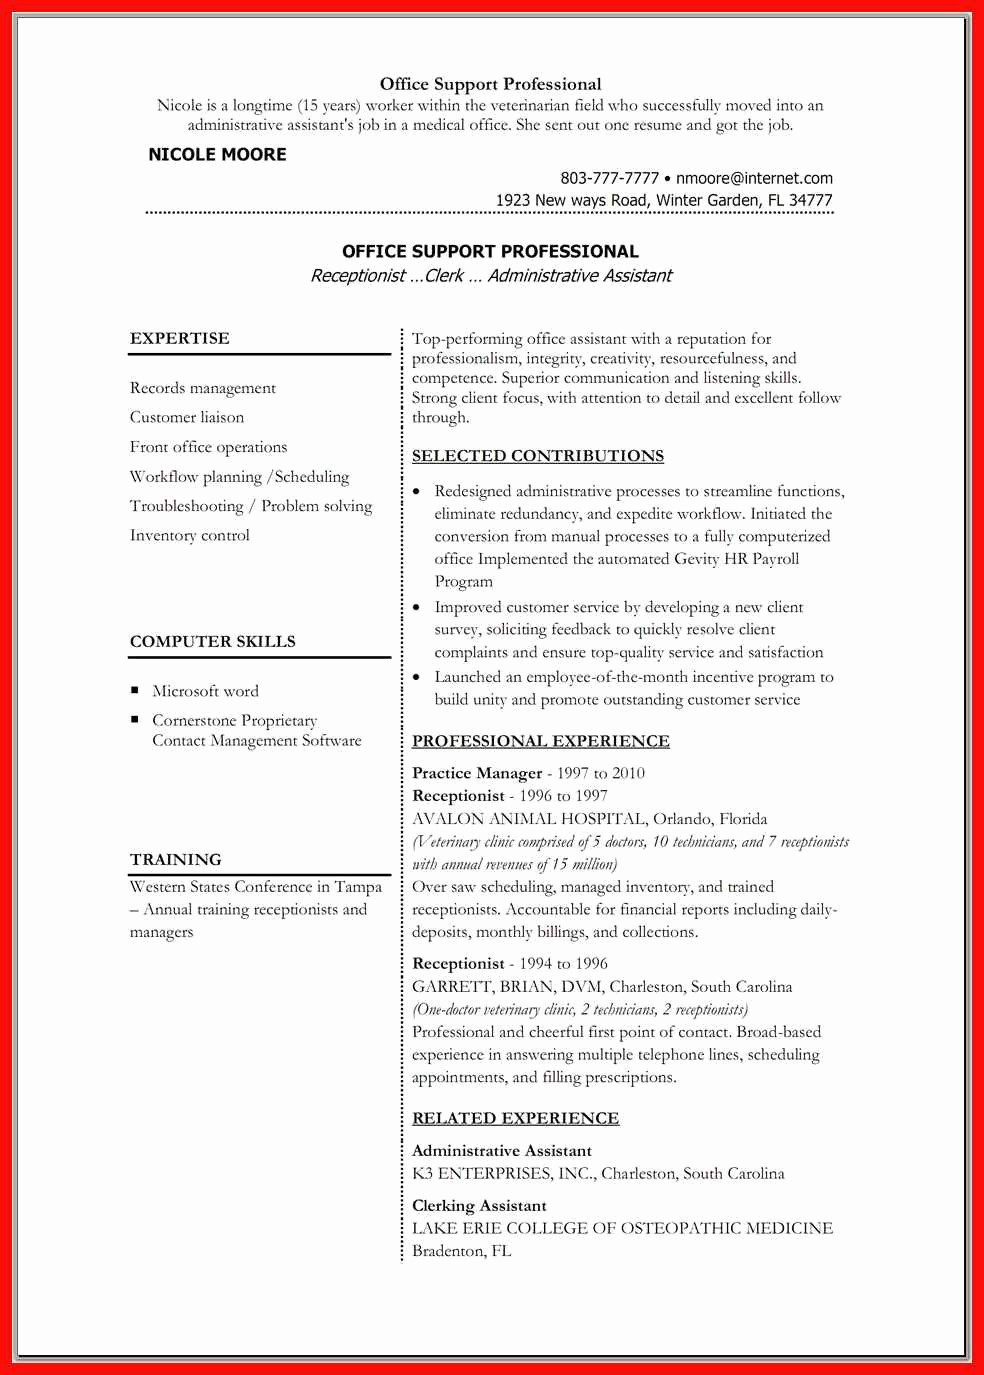 Ms Word Template for Resume Elegant Resume Word Doc Template